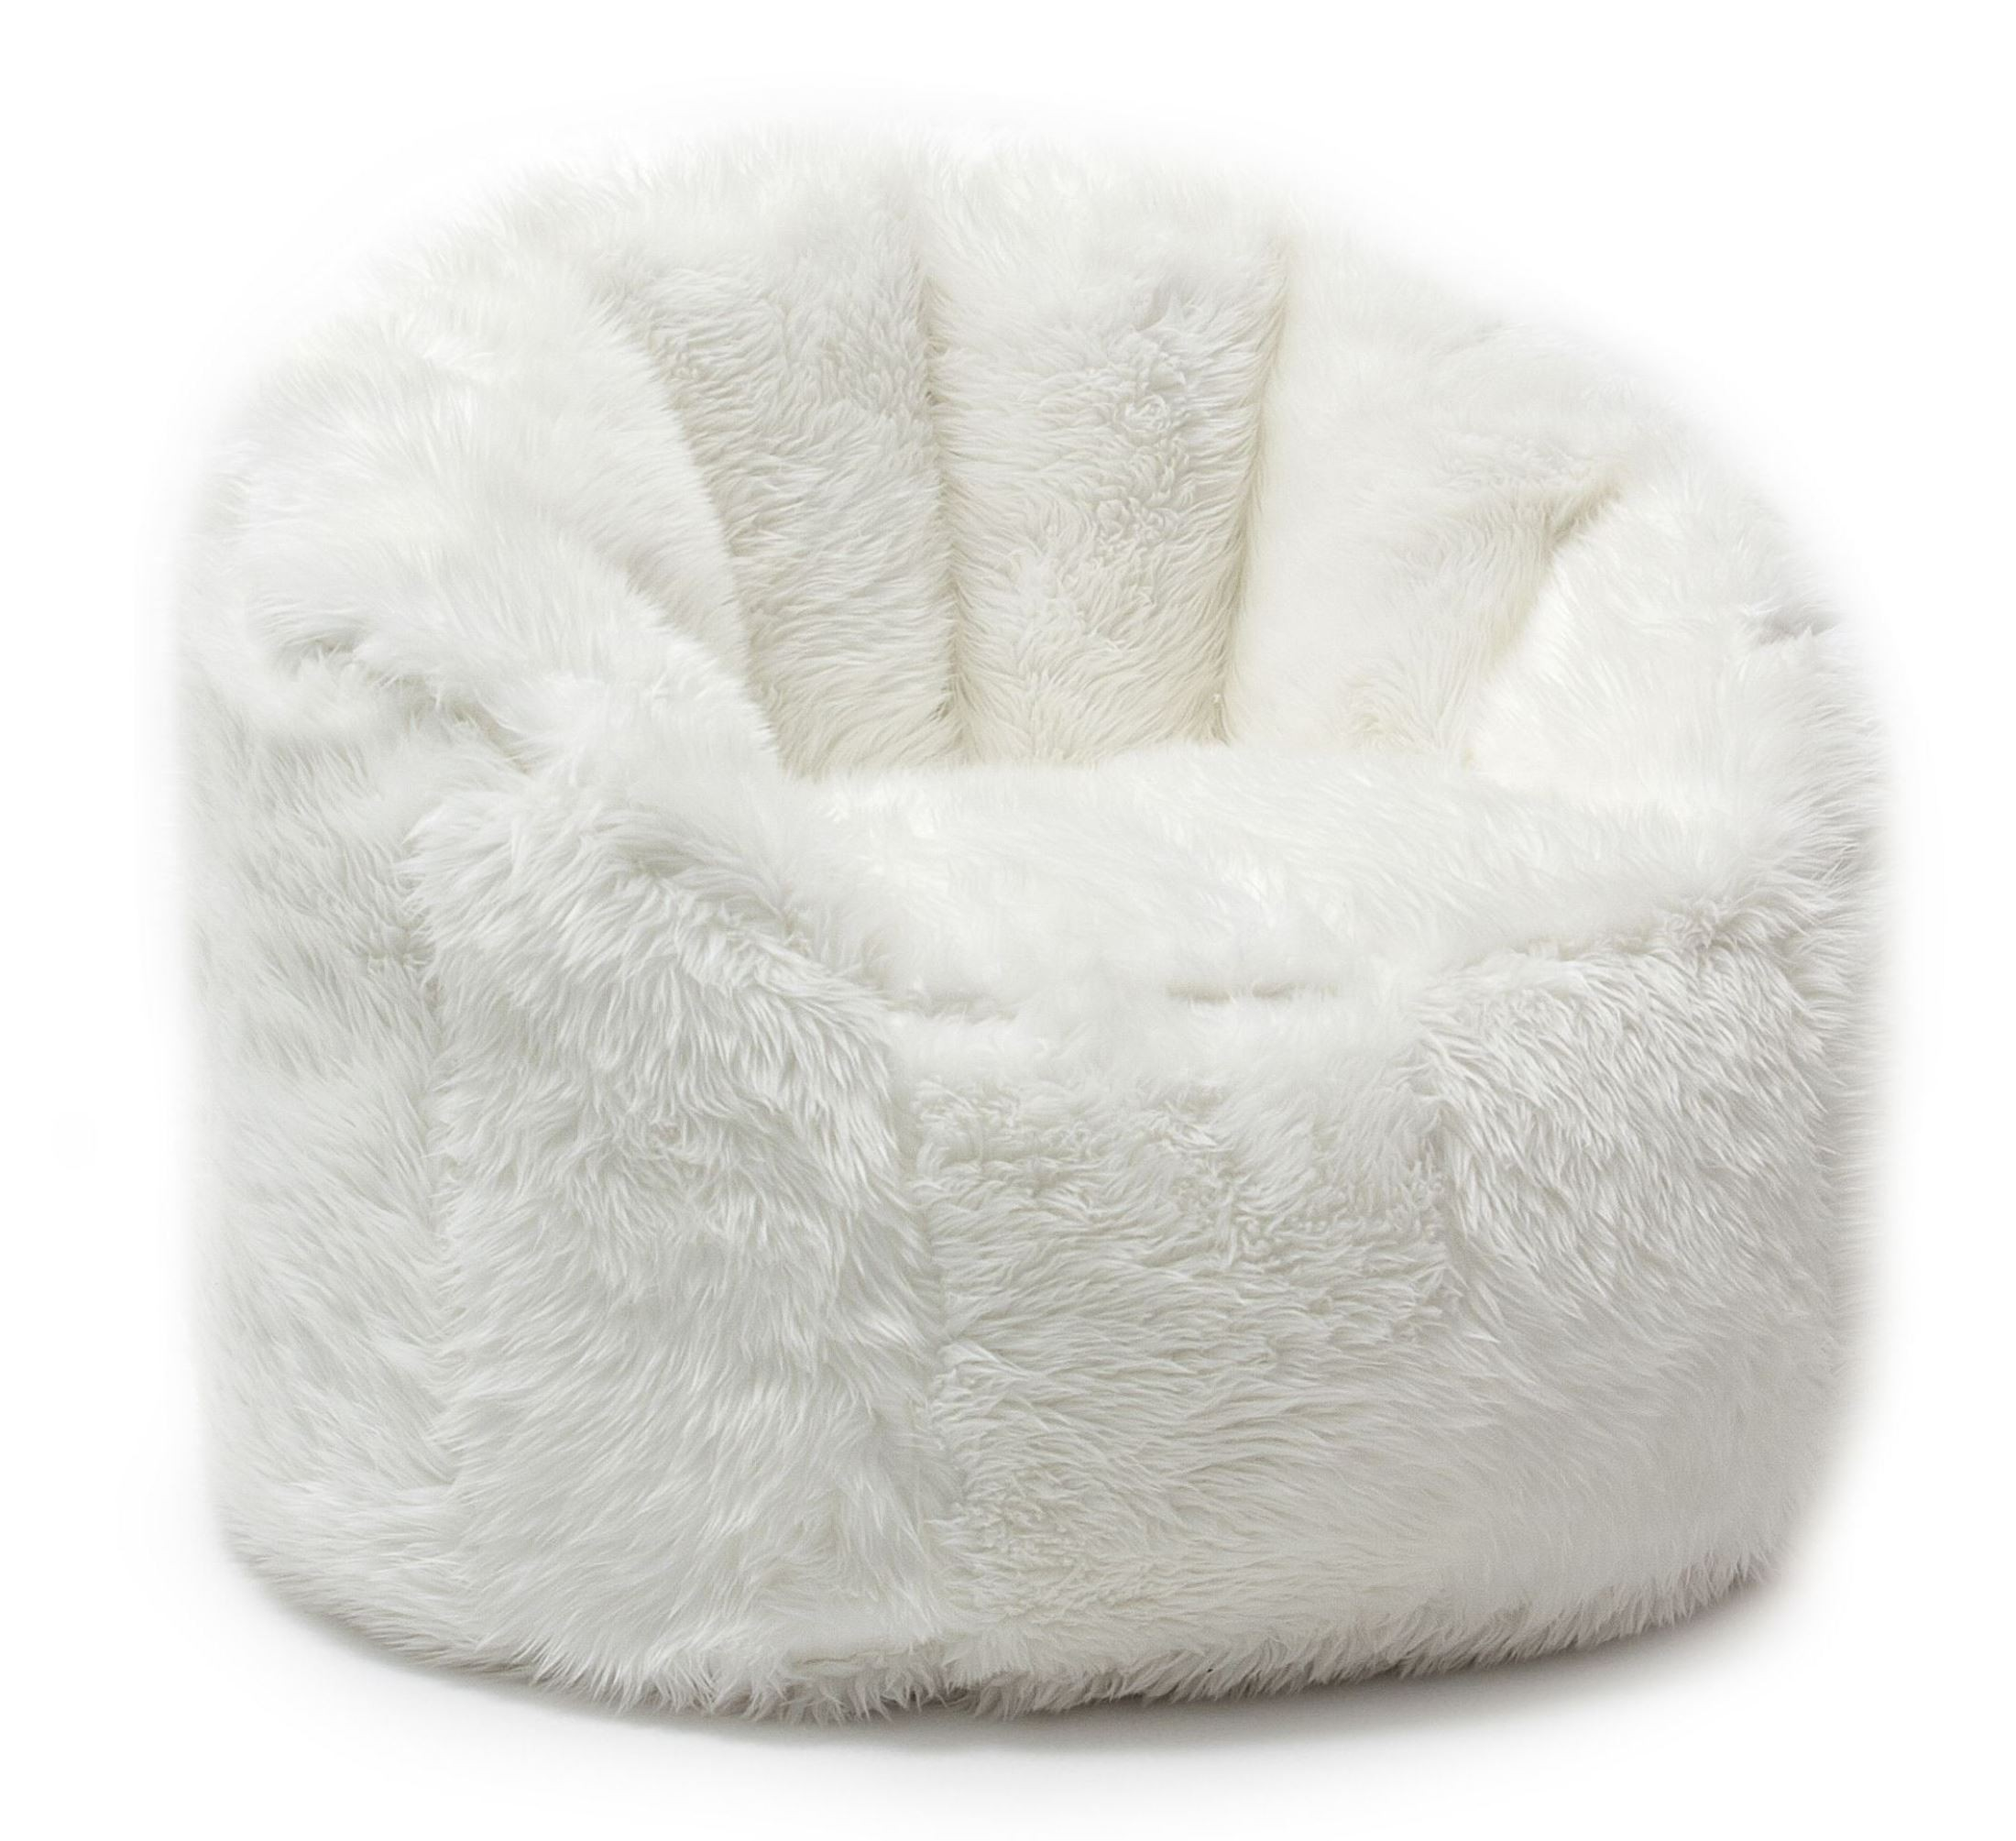 North Pole Merry Kids Holiday Party furthermore Pure Cashmere Scarf Pale Pink likewise 671327 together with fiest Most Stylish Rocking Chairs For The Nursery as well Unusual Wicker Armchair For Reading. on fluffy chairs